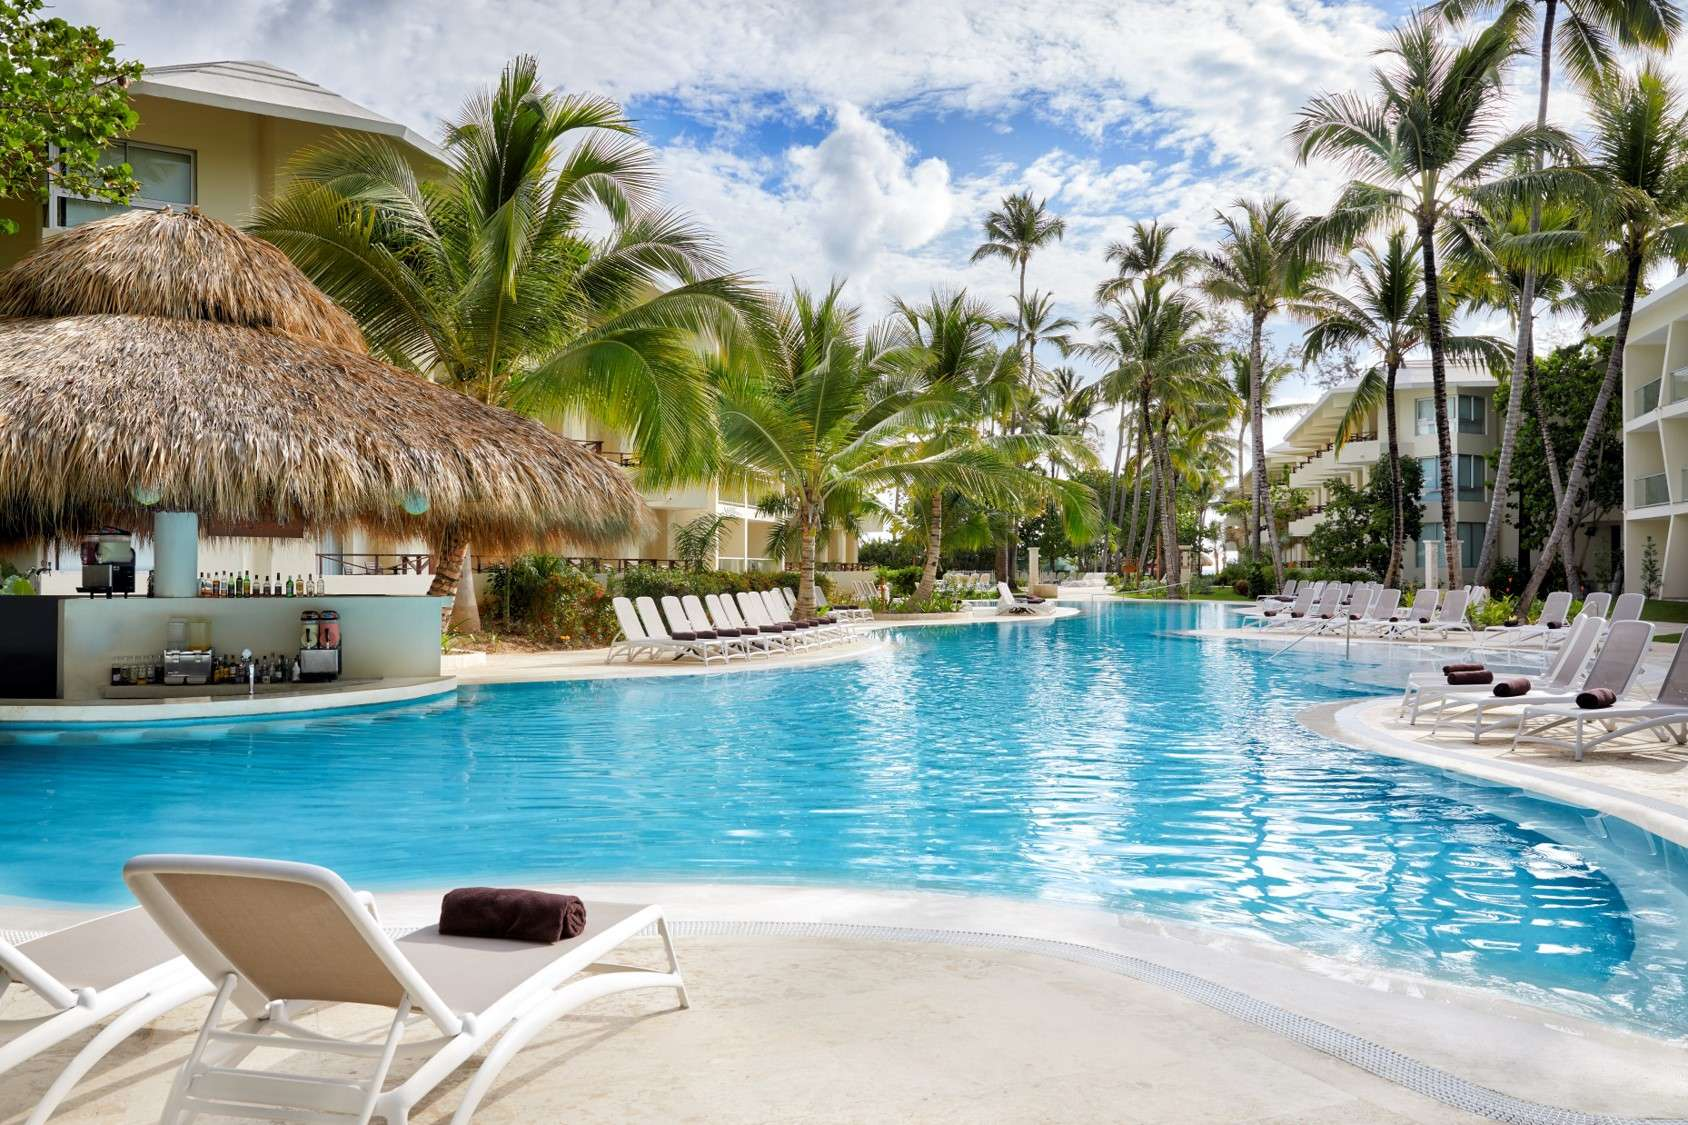 Image of Sunscape Bavaro Beach Punta Cana, Punta Cana, Dom Rep